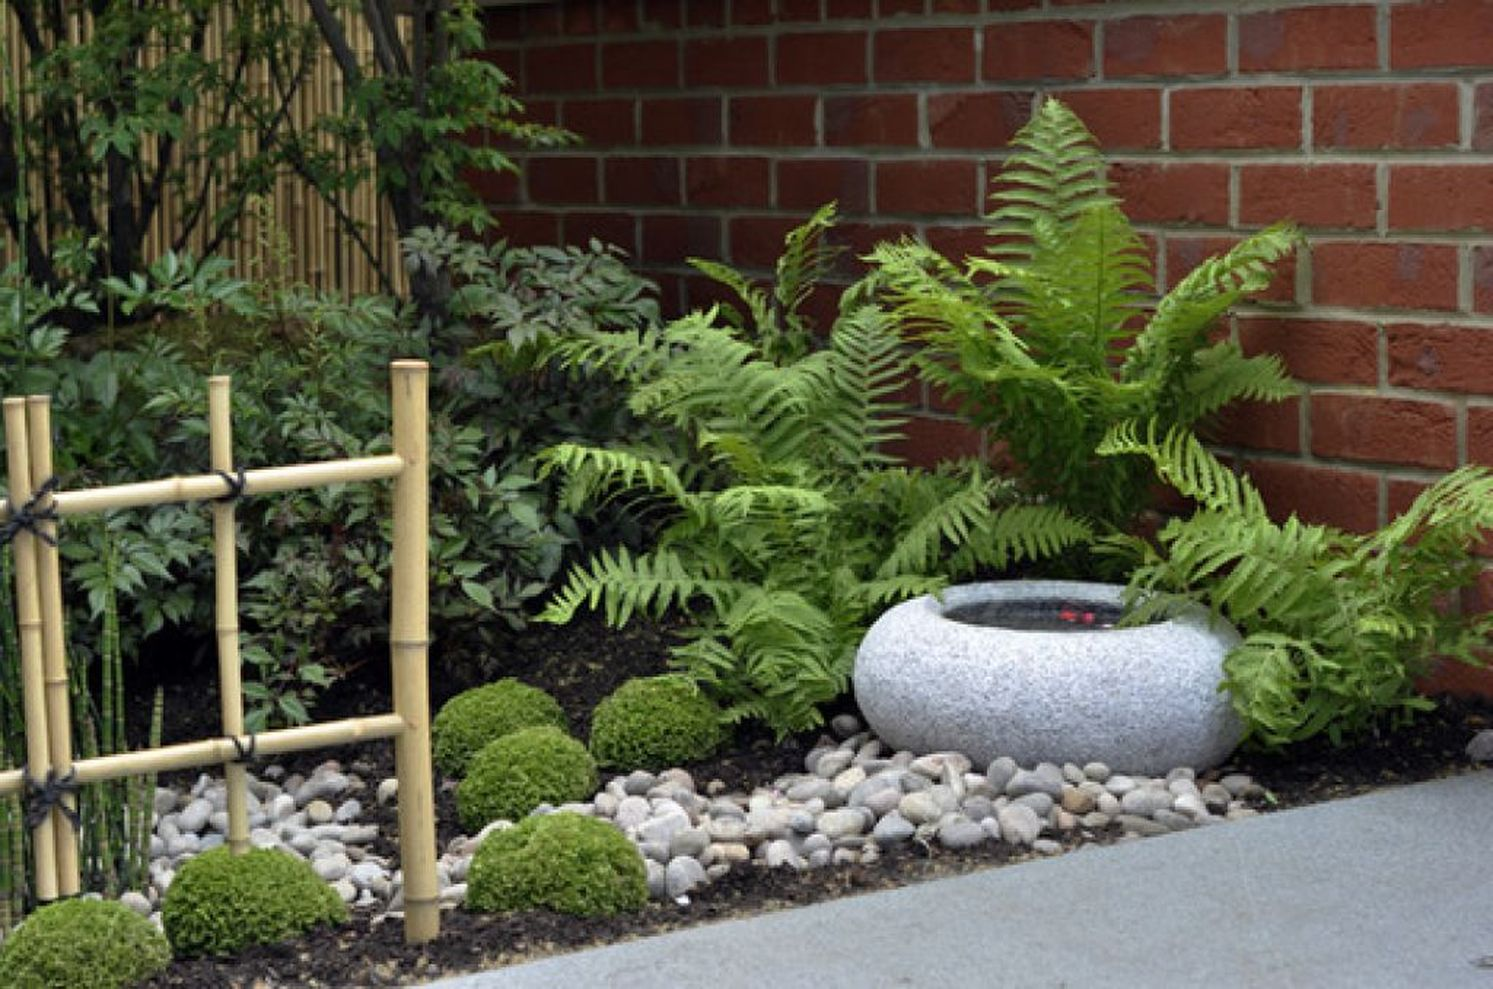 Inspiring small japanese garden design ideas 40 - ROUNDECOR on Small Backyard Japanese Garden Ideas id=20745